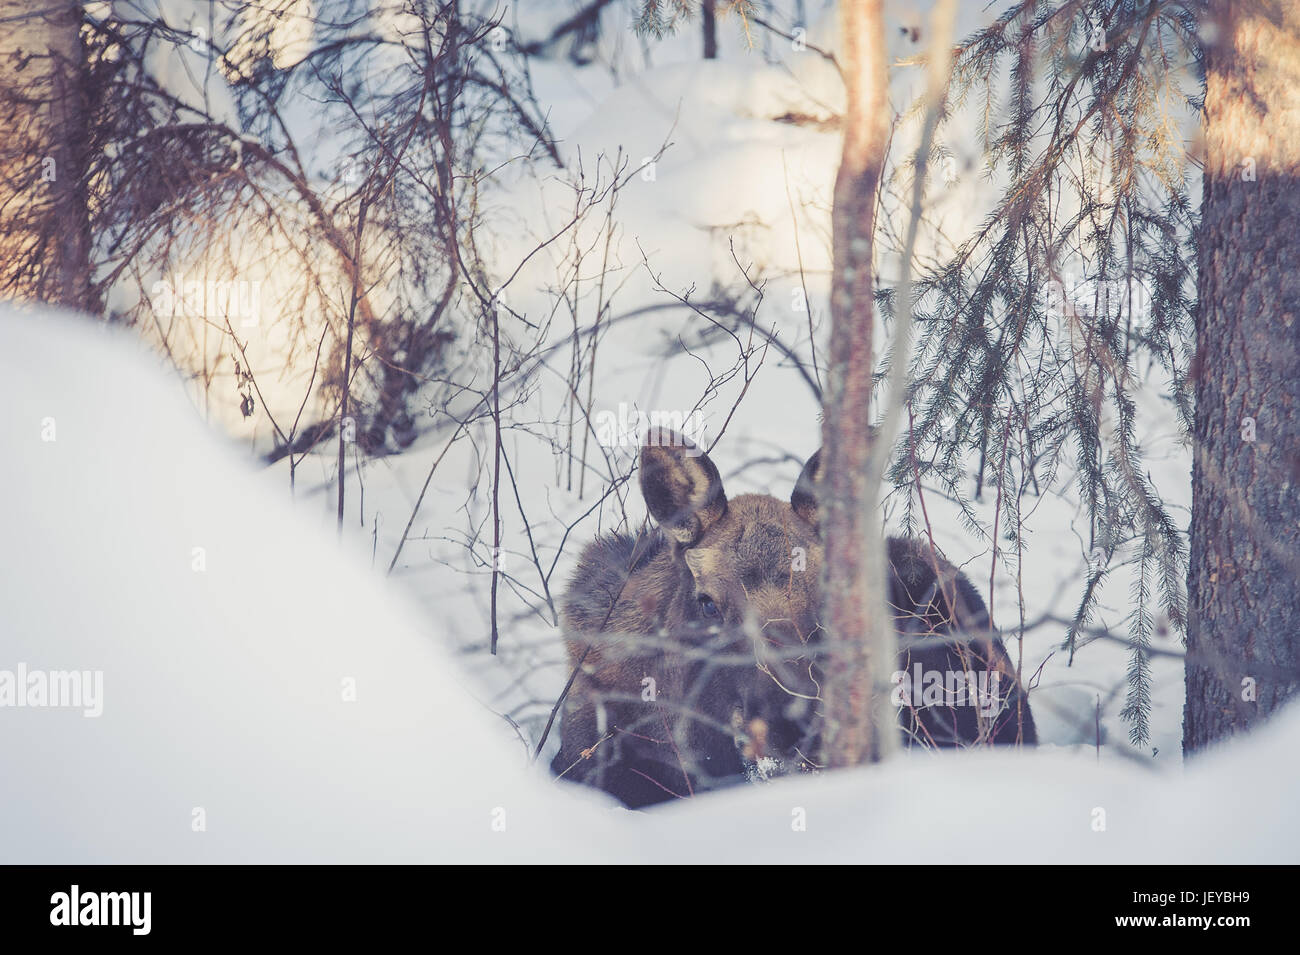 Young female moose at rest in her natural habitat near Fairbanks, AK. Stock Photo